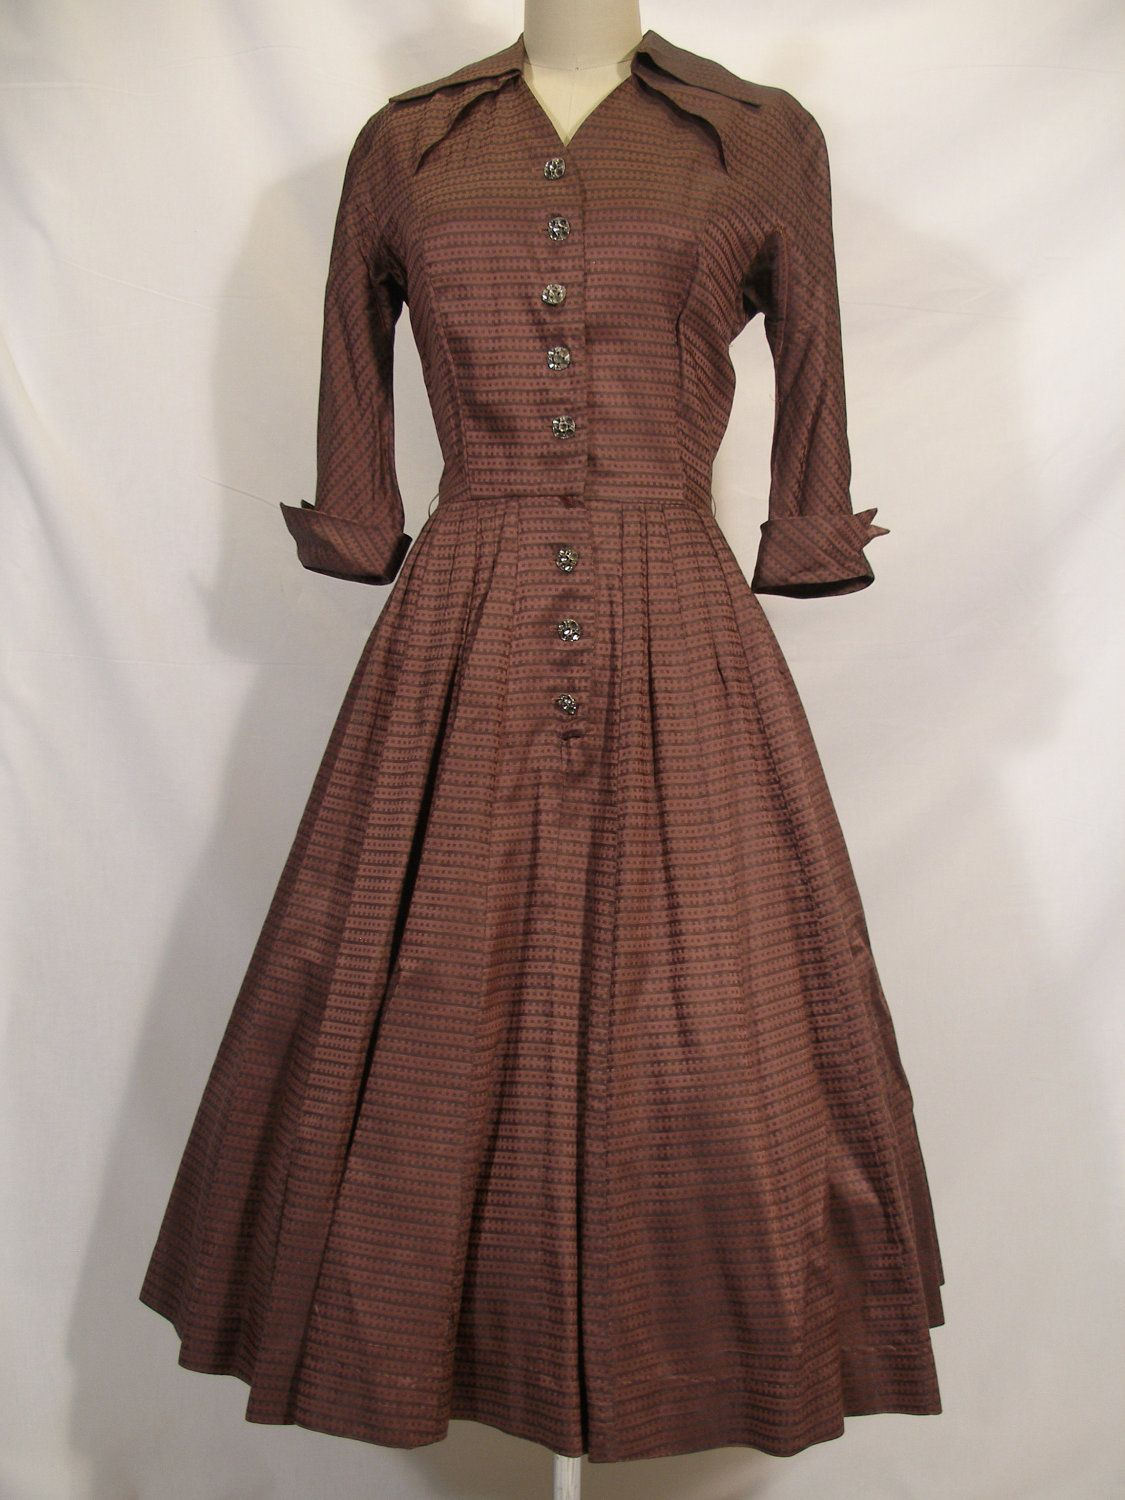 Retro Revolution Where To Find Vintage Clothing In: 1950s Mauve Grey Iridescent Shirtwaist Dress